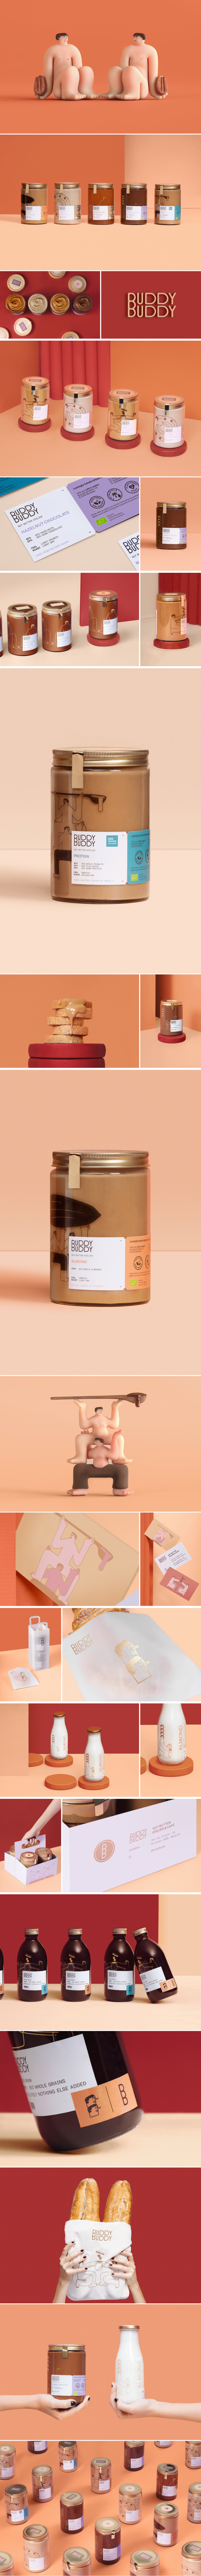 Graphic Design,packaging ,Creative Direction ,Branding